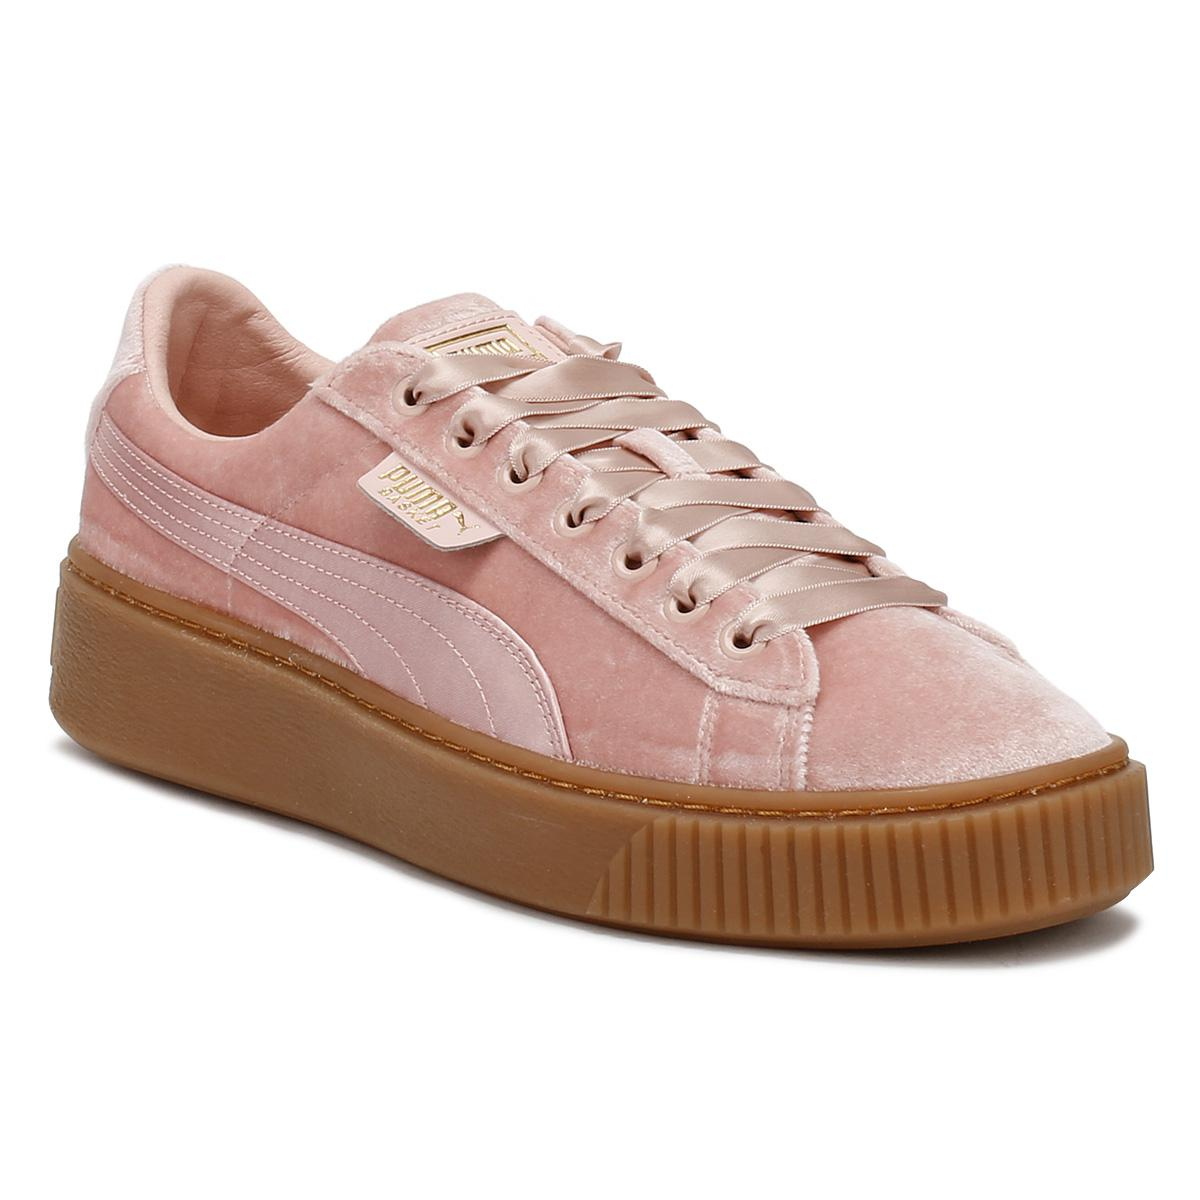 run shoes women great variety styles Womens Pink / Gum Velvet Basket Platform Trainers Women's Shoes (trainers)  In Pink